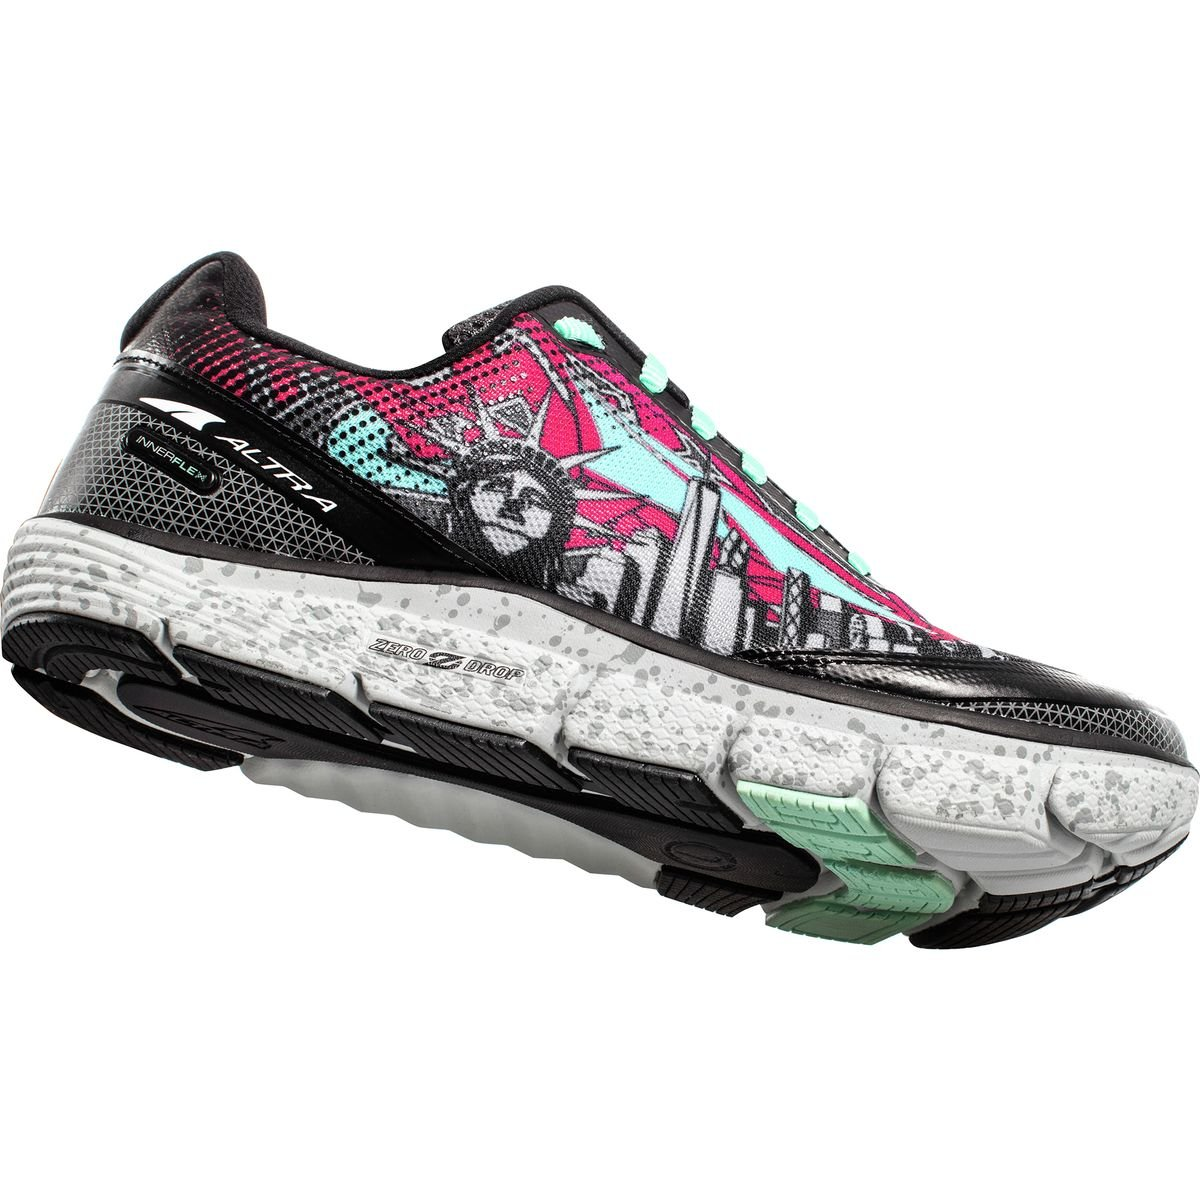 Altra Womens Torin NYC Running Shoes A2634-9-NYCM-6